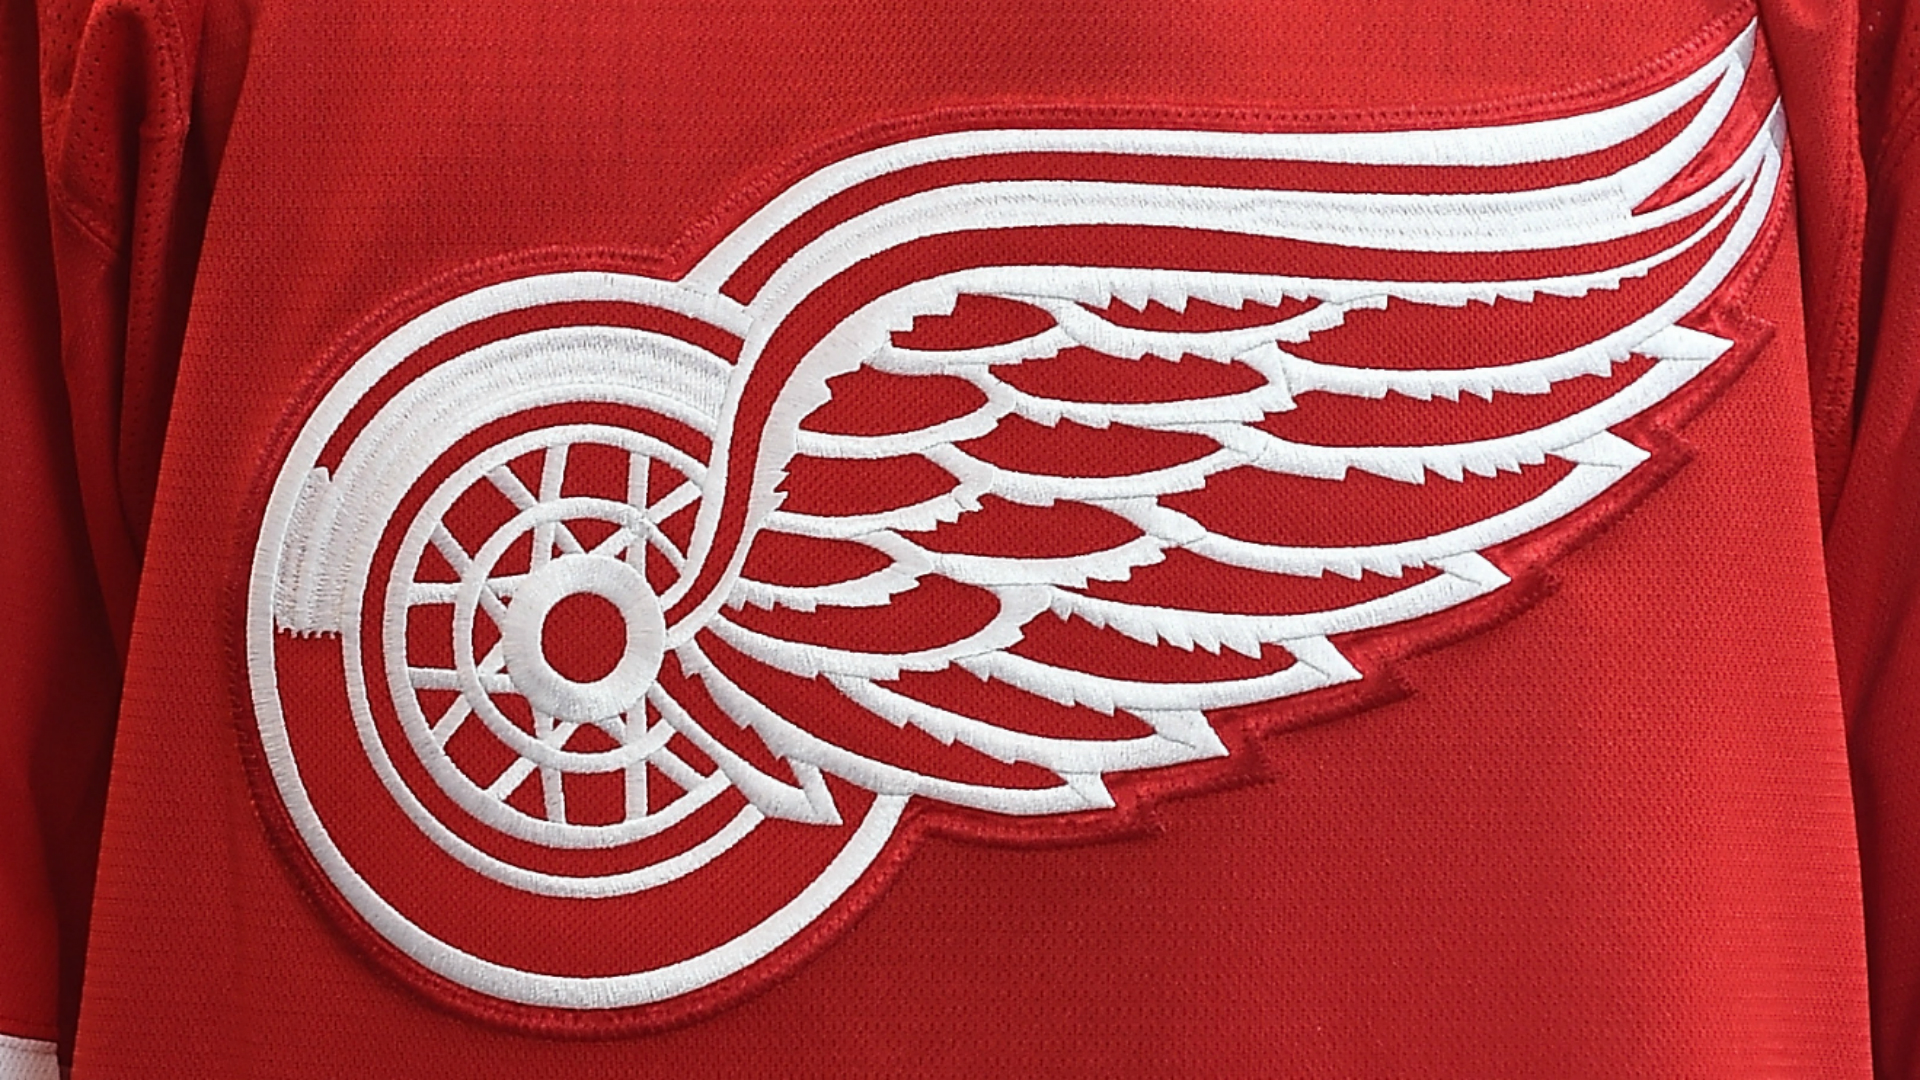 Detroit Red Wings Threaten Legal Action Against White Nationalist Rally